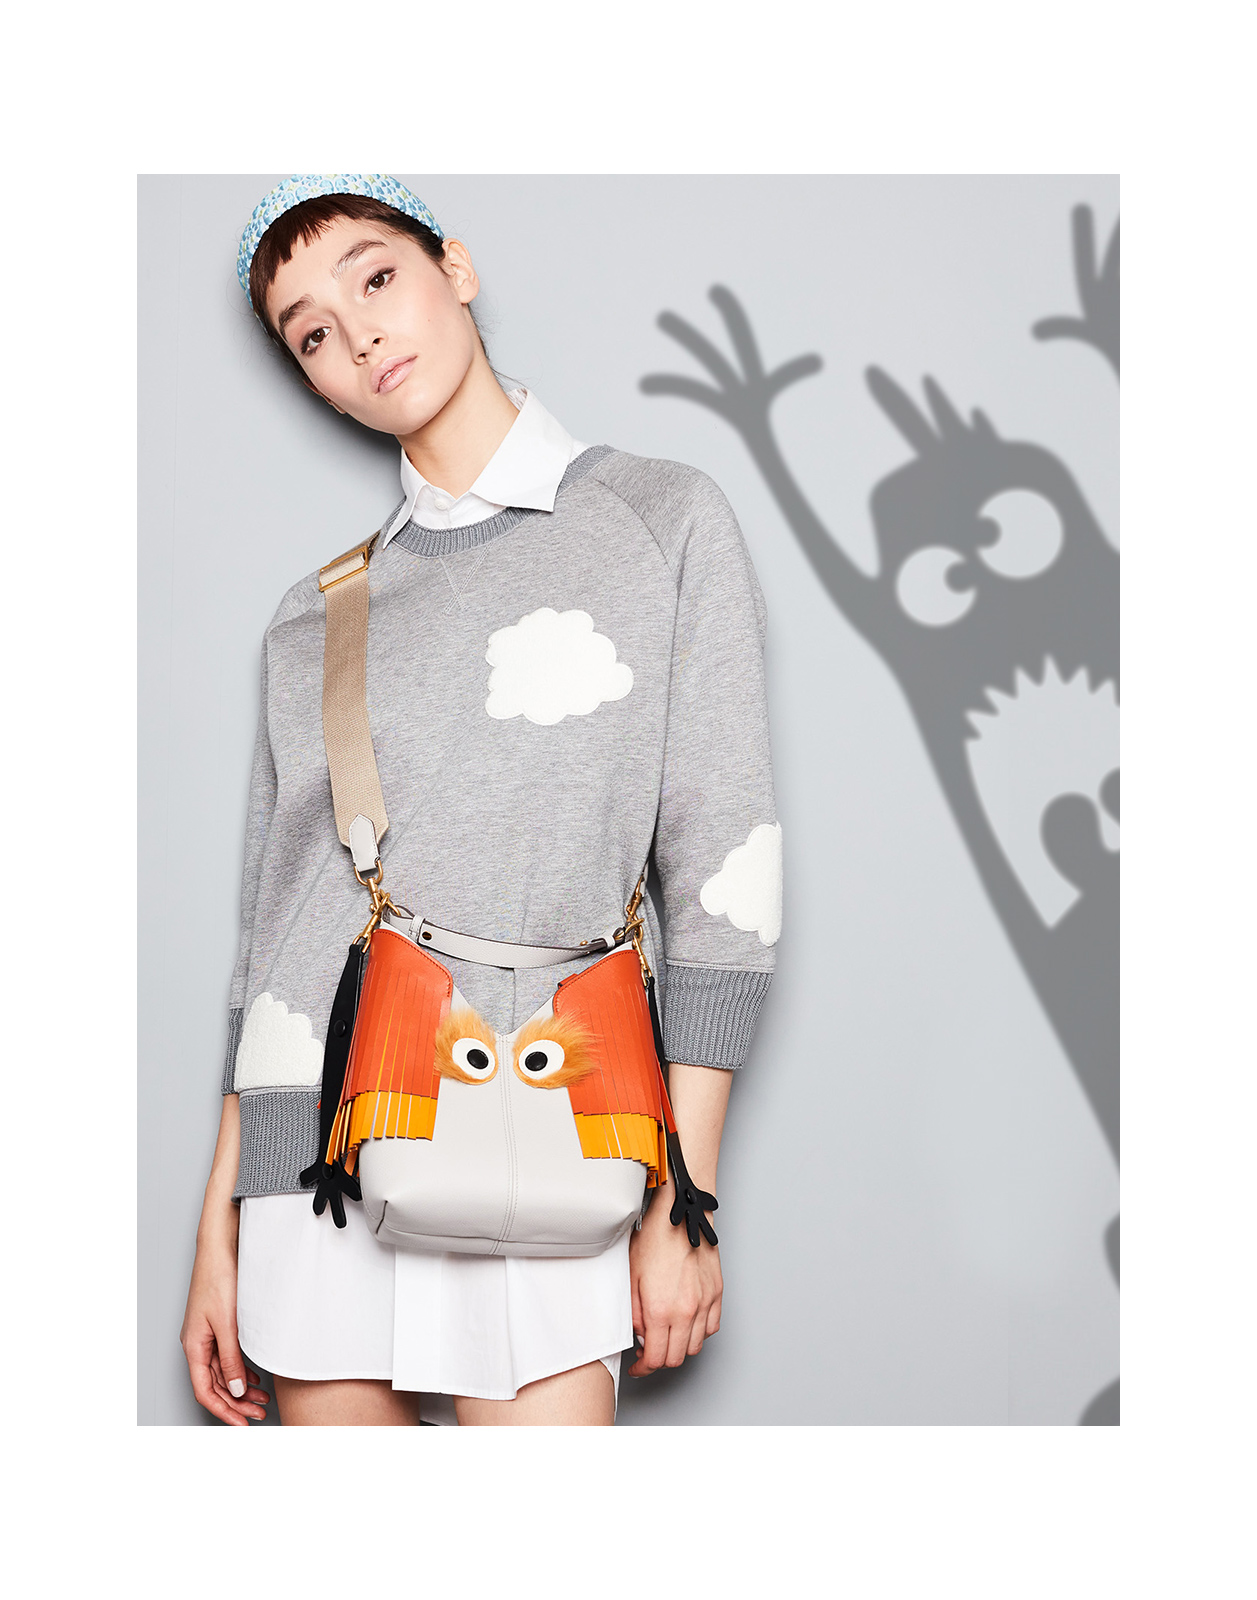 17_10_20_ANYAHINDMARCH_SS18_D2_LOOK_7_5314_crp_1600pix